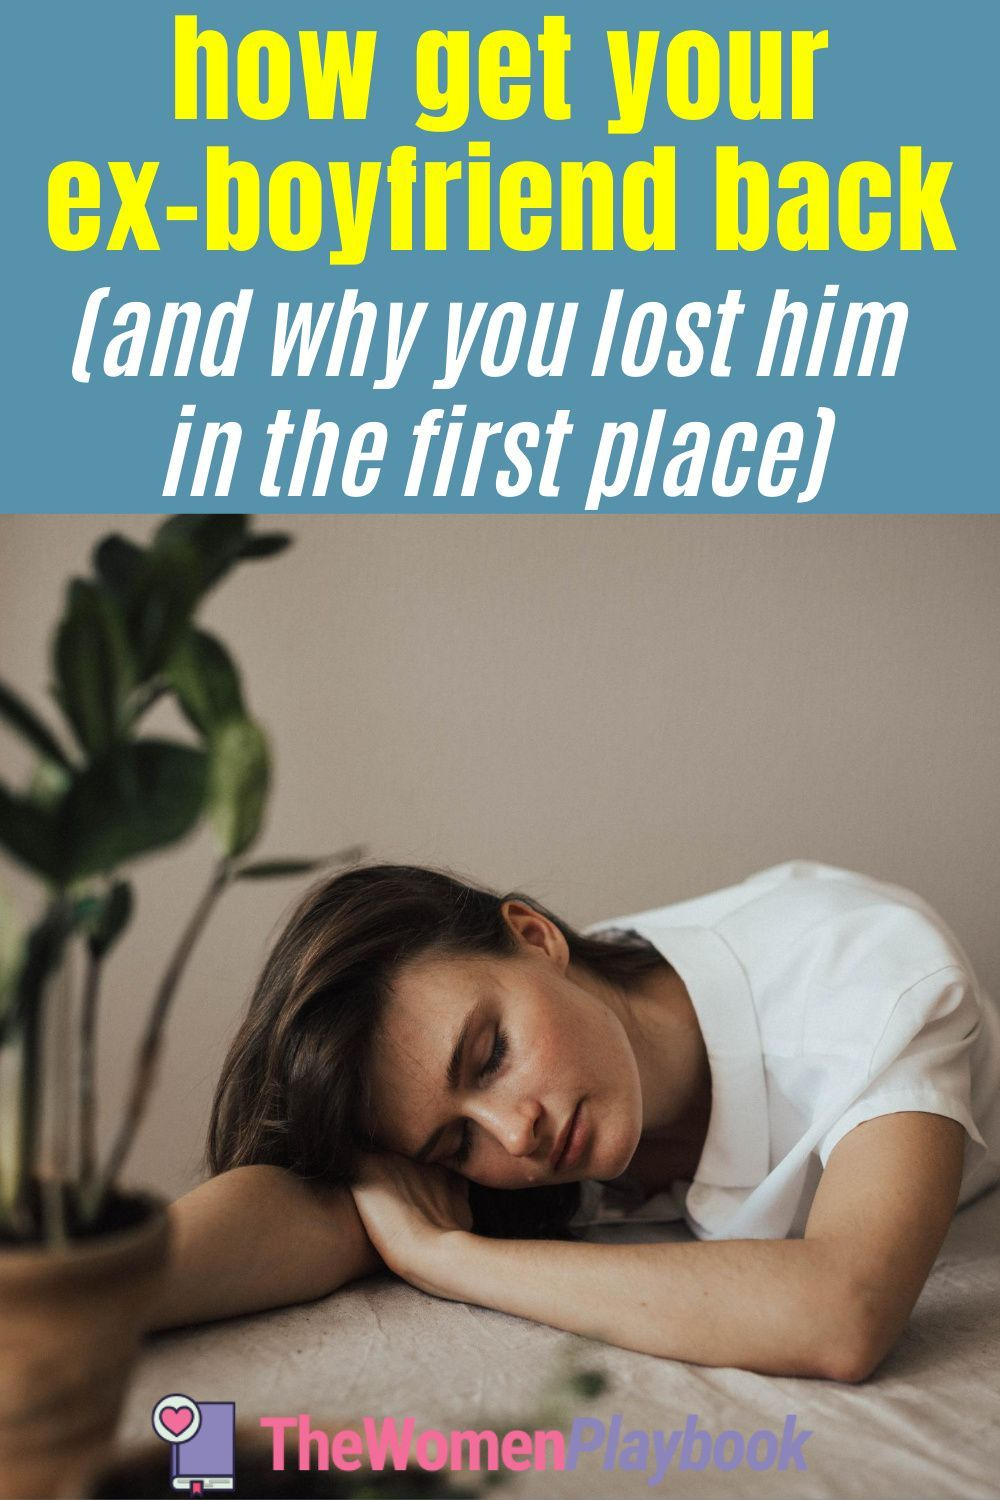 How get your exboyfriend back and why you lost him in